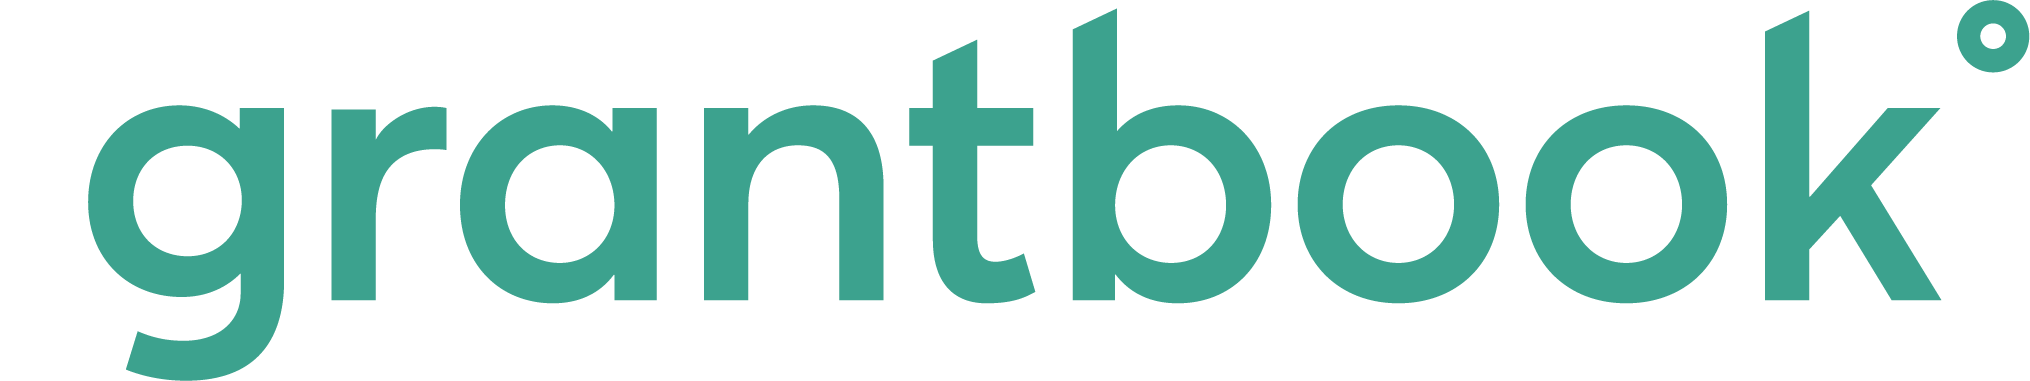 Grantbook Logo in Turquoise